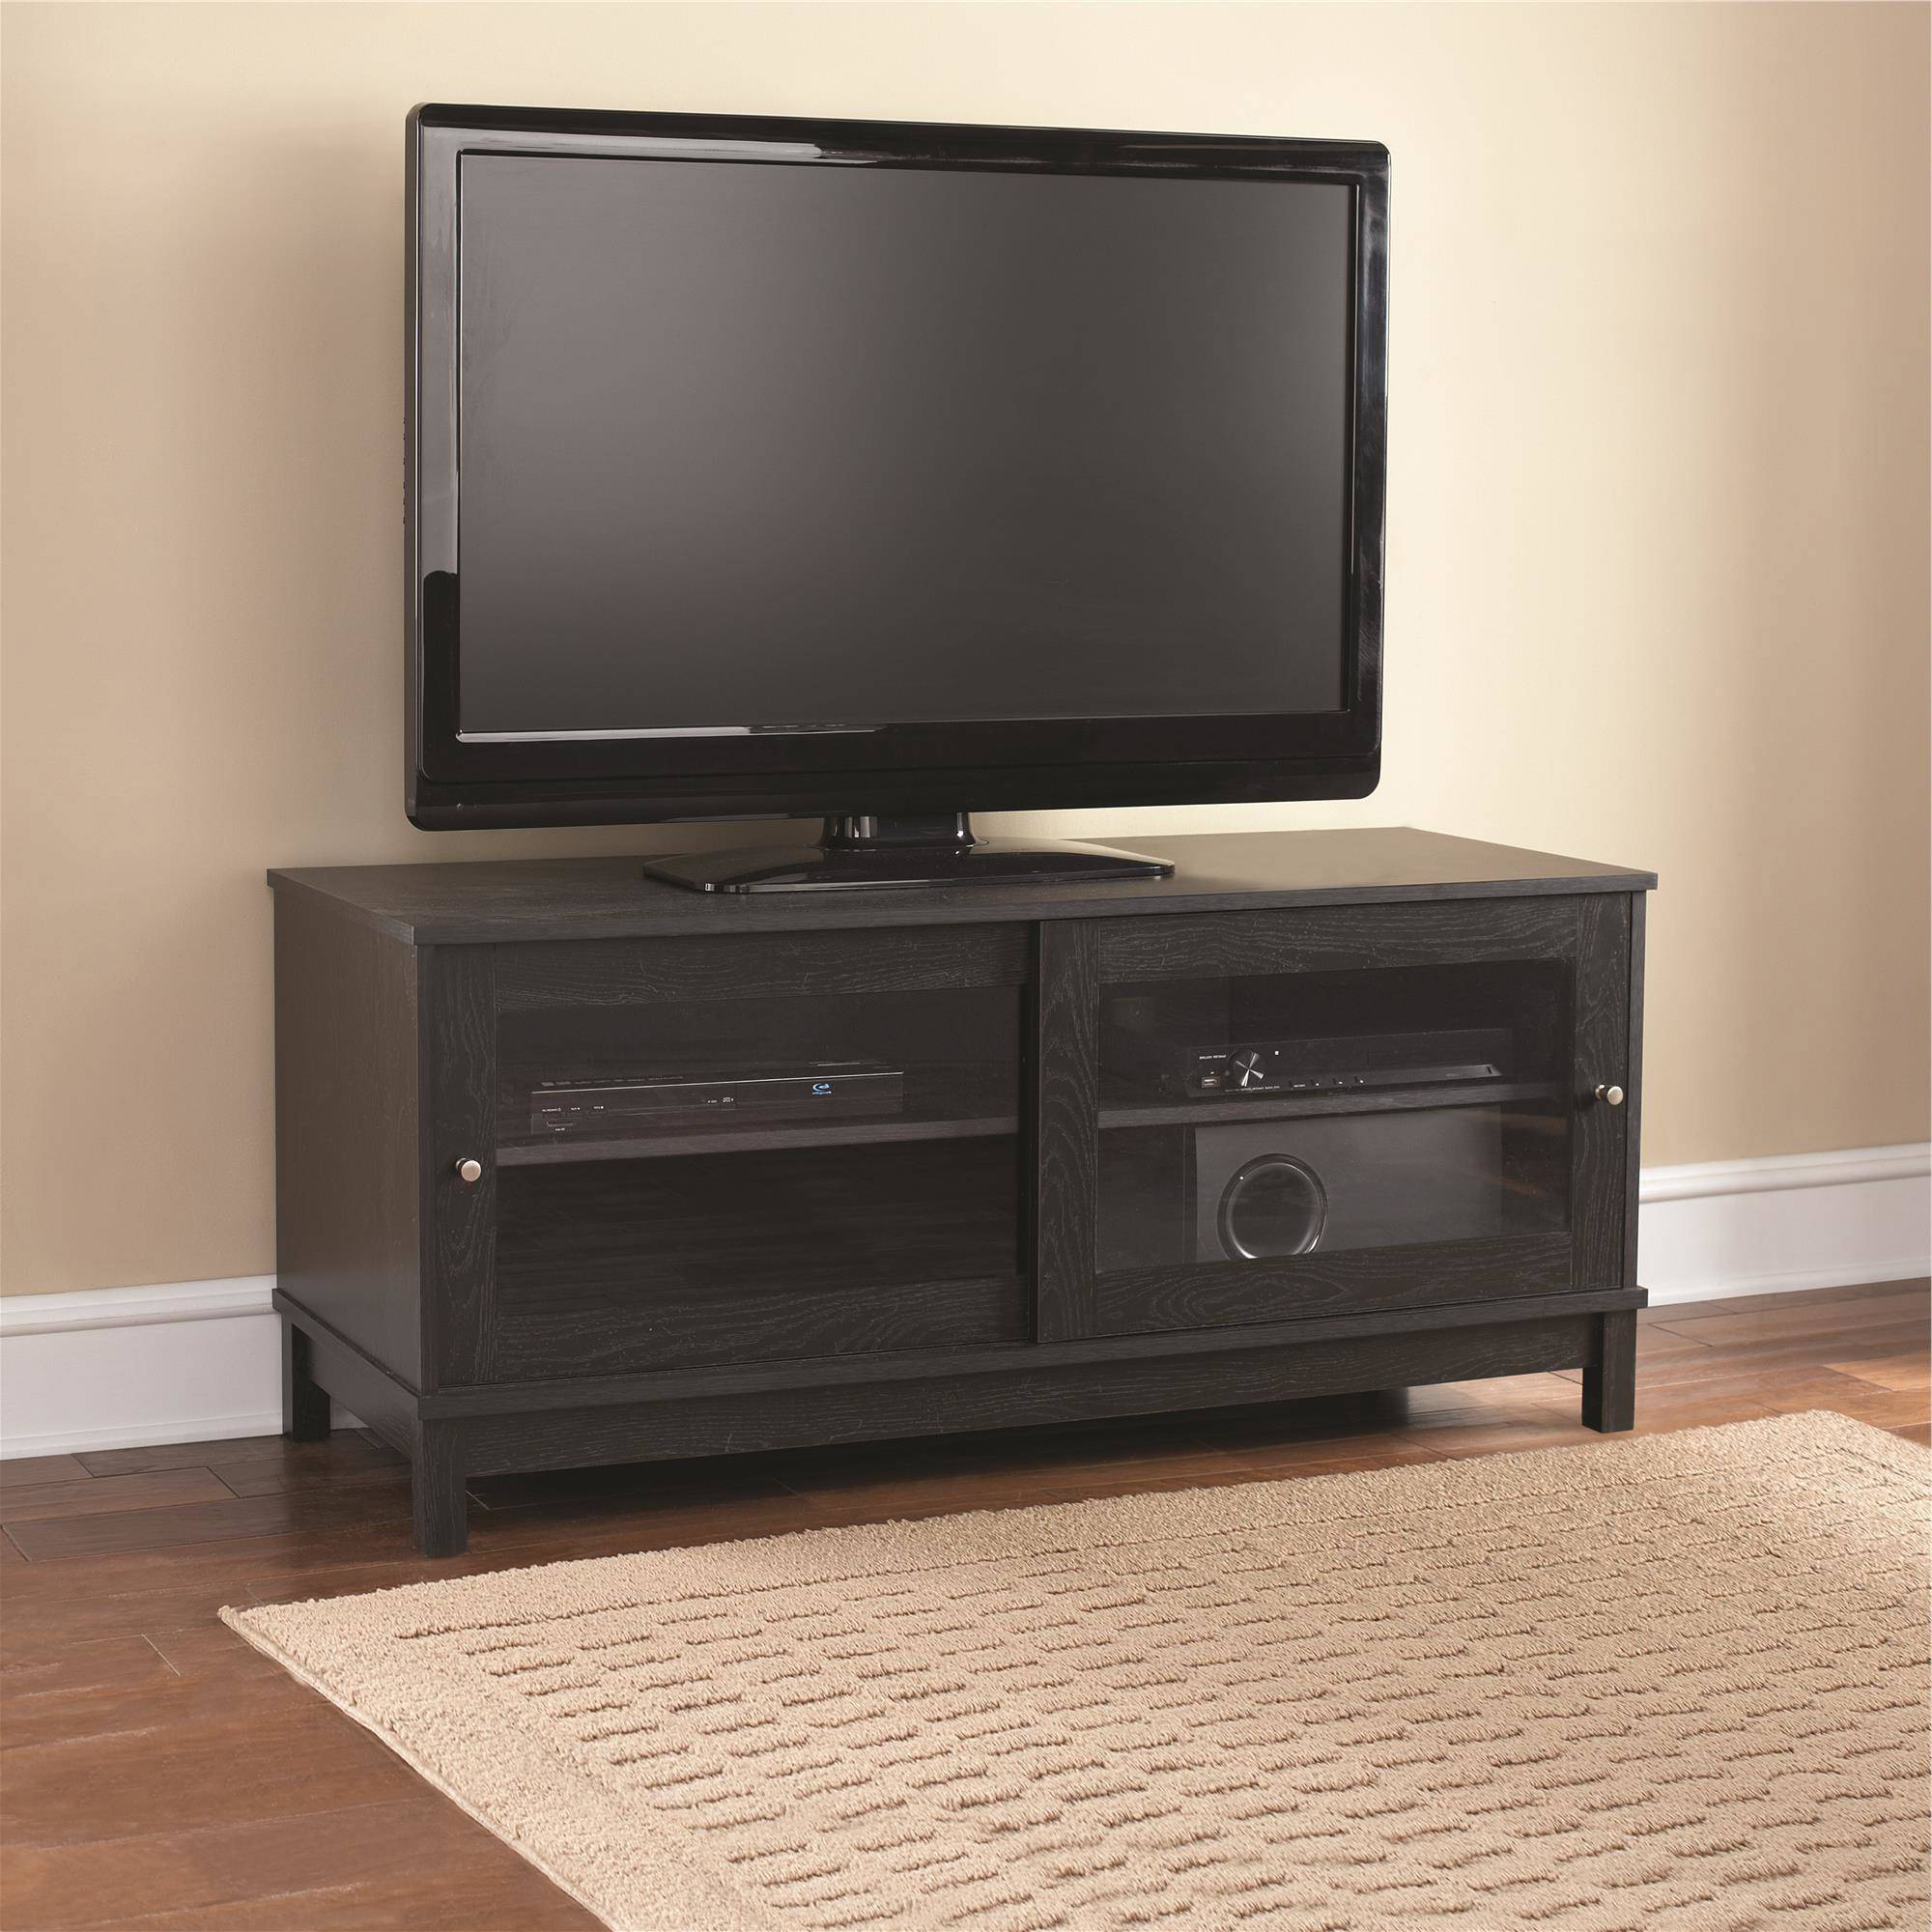 "Newest Tv Stands Cabinets With Regard To Mainstays 55"" Tv Stand With Sliding Glass Doors, Multiple Colors (Gallery 18 of 20)"